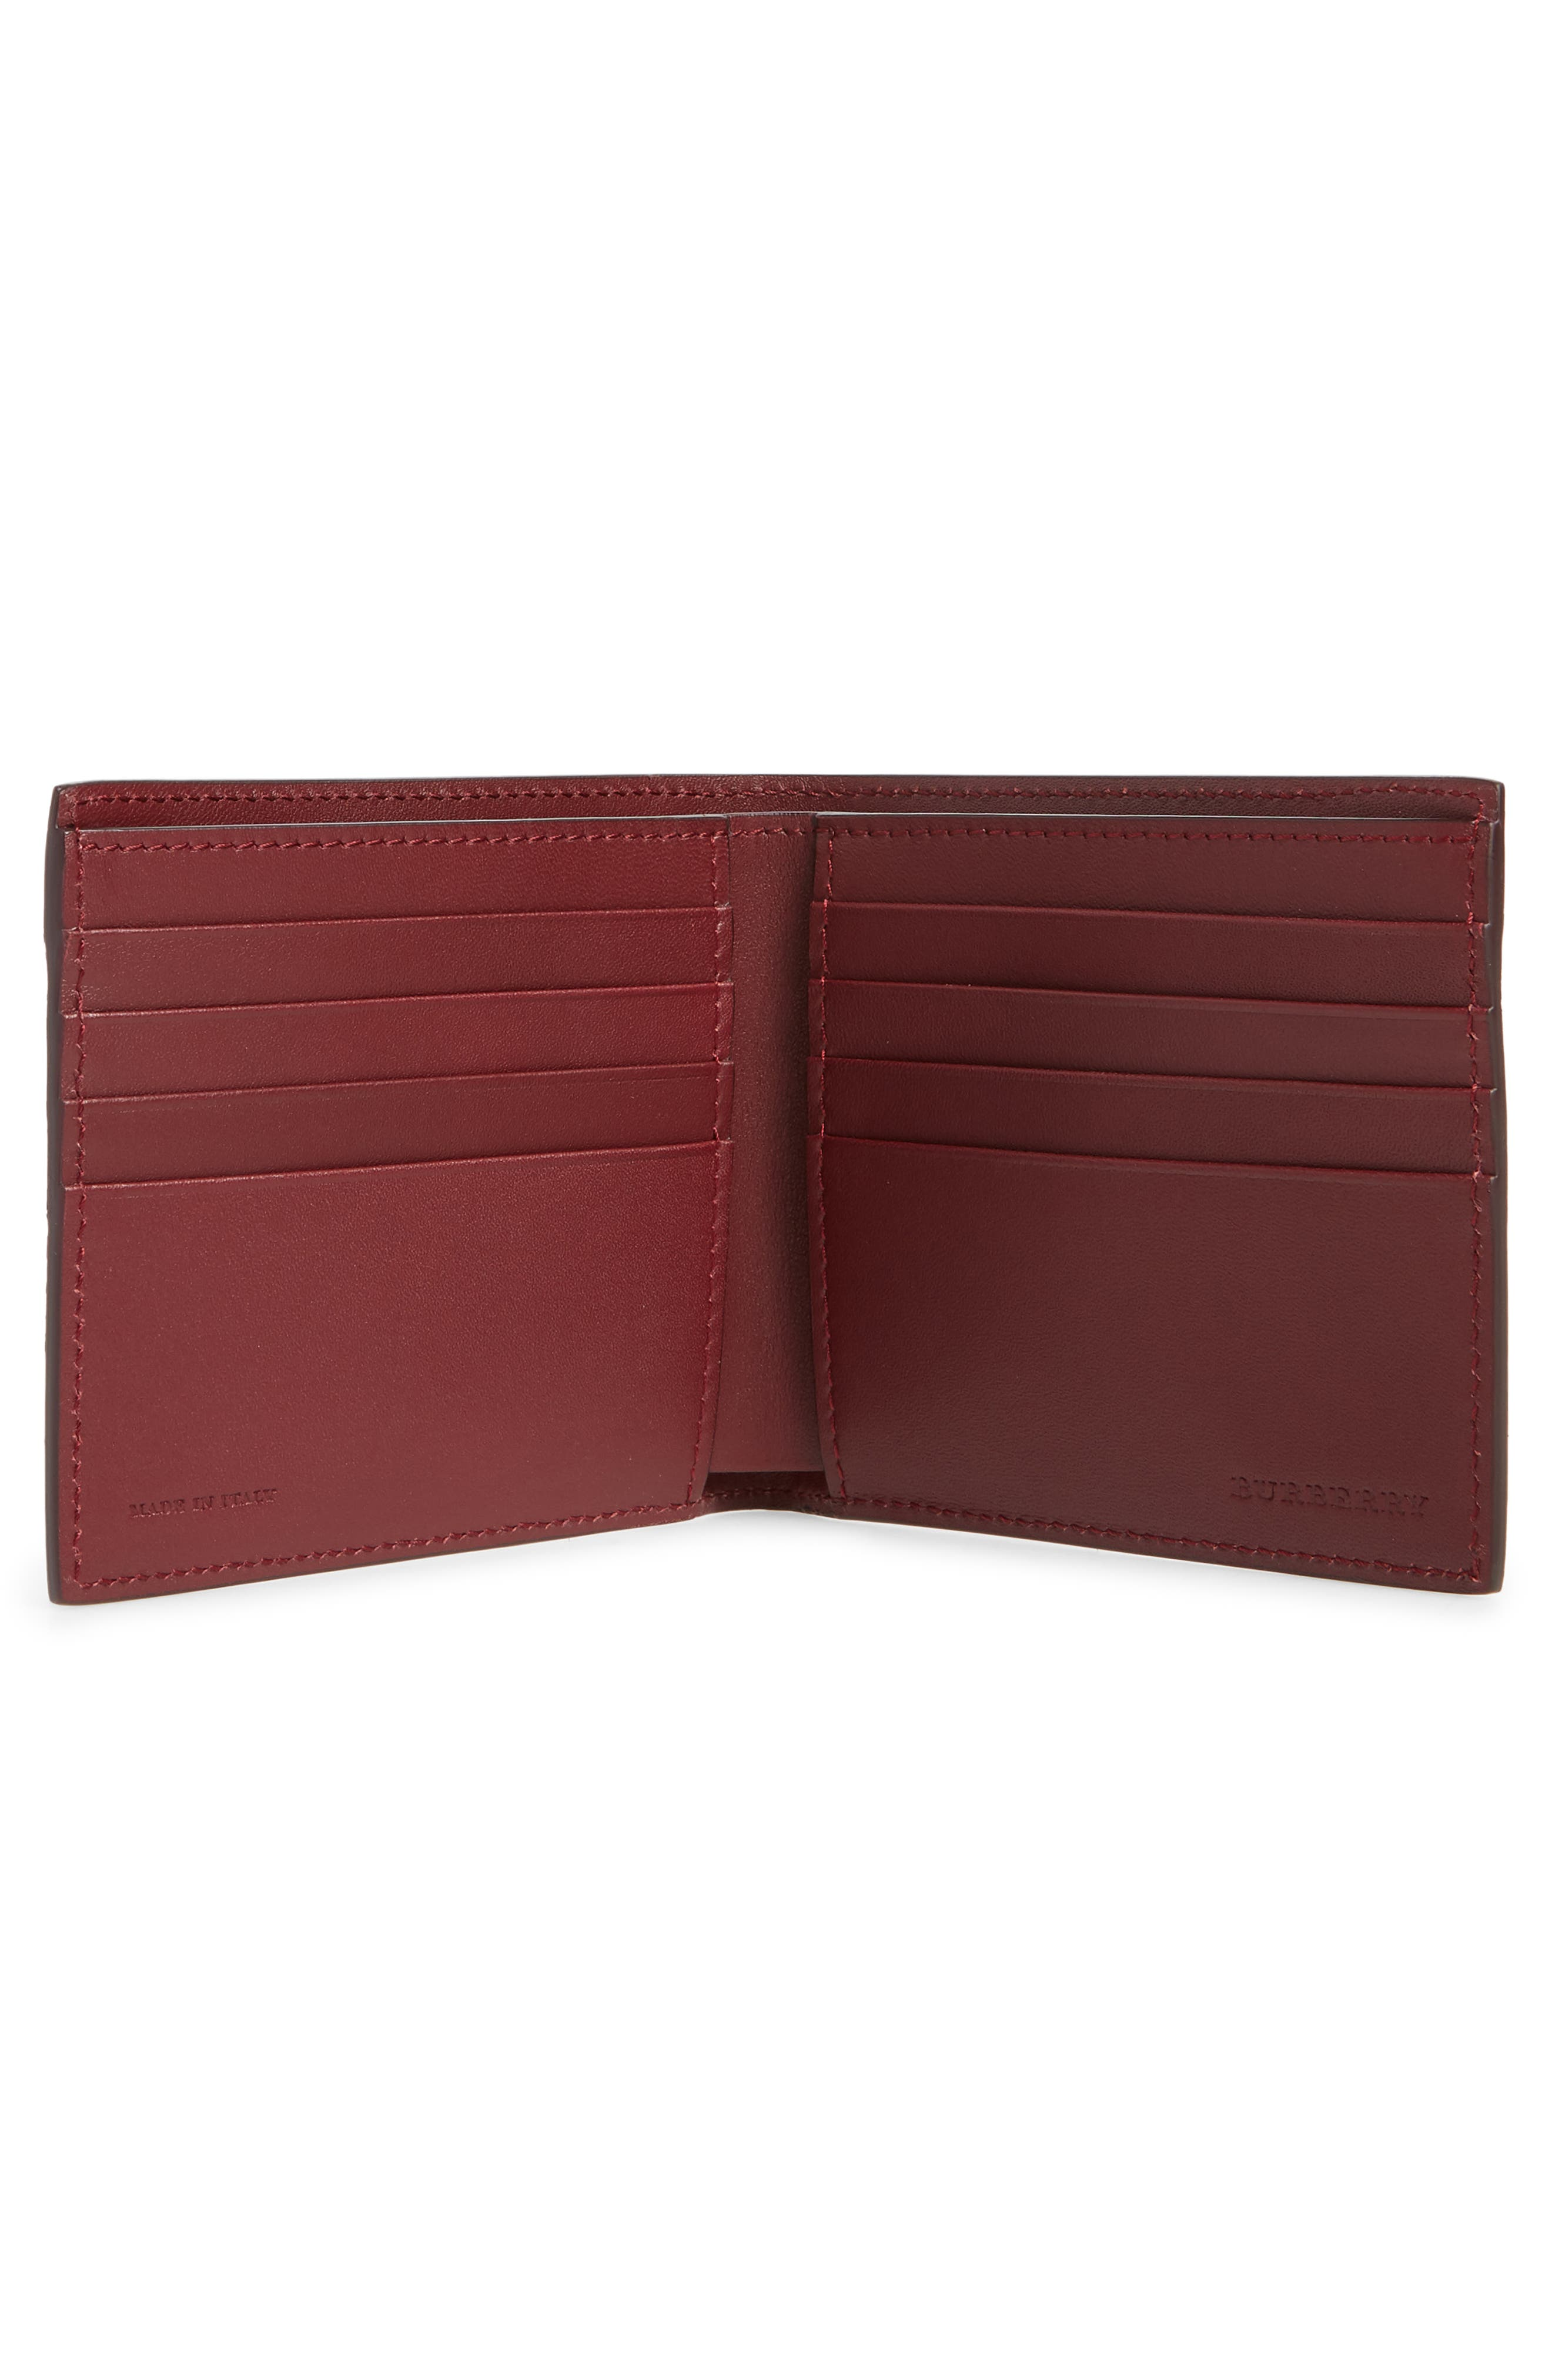 Leather Bifold Wallet,                             Alternate thumbnail 2, color,                             Burgundy Red